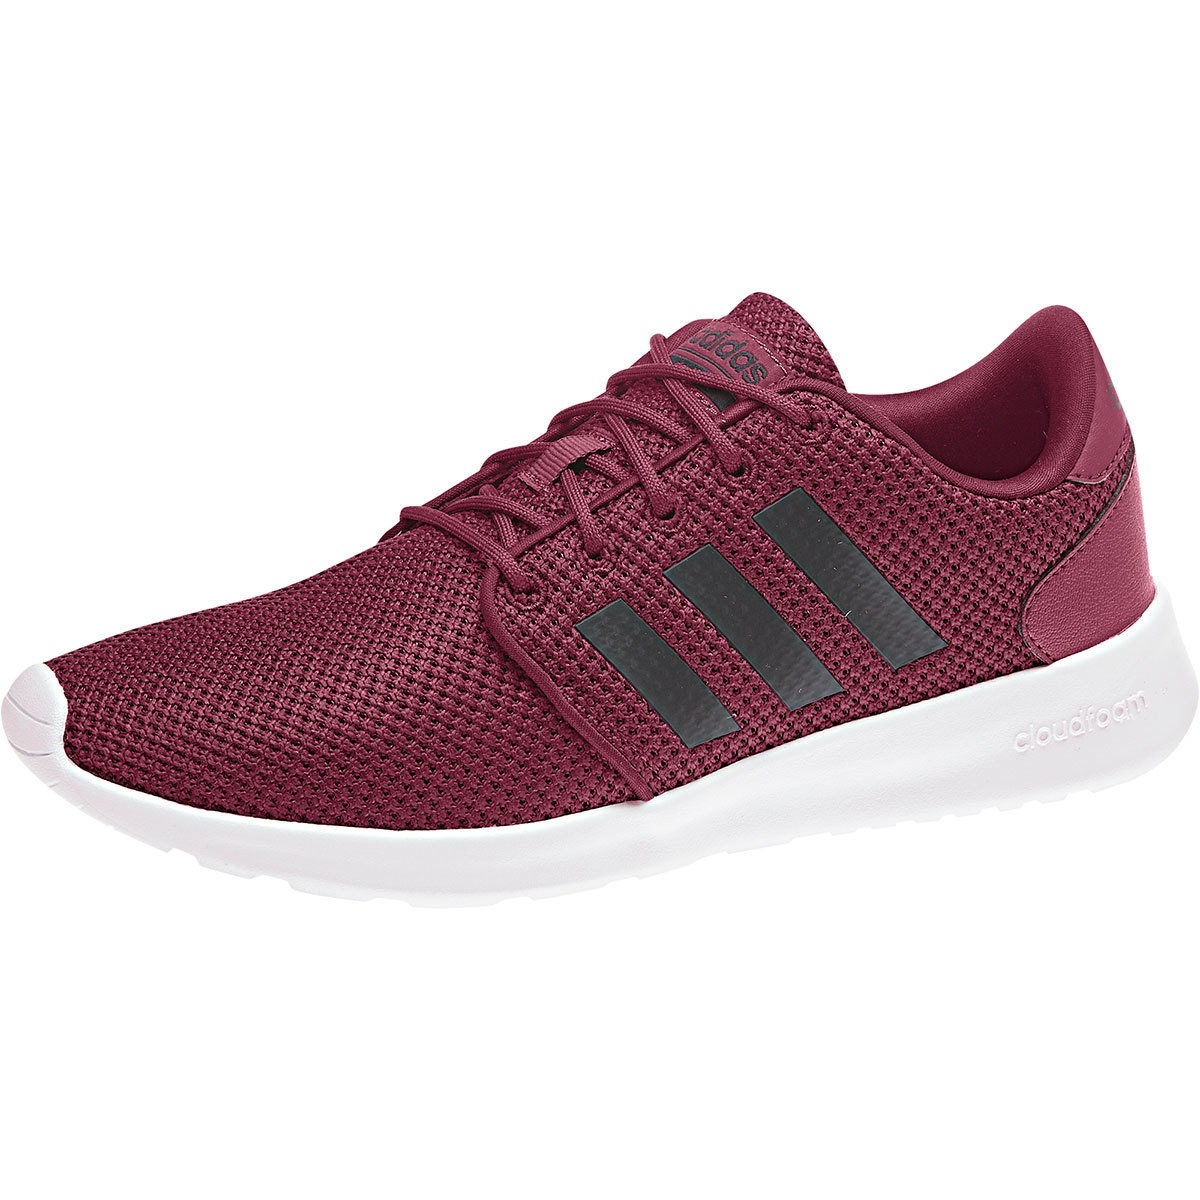 Adidas Women's Cloudfoam Qt Racer Running Shoes - Red, 7.5